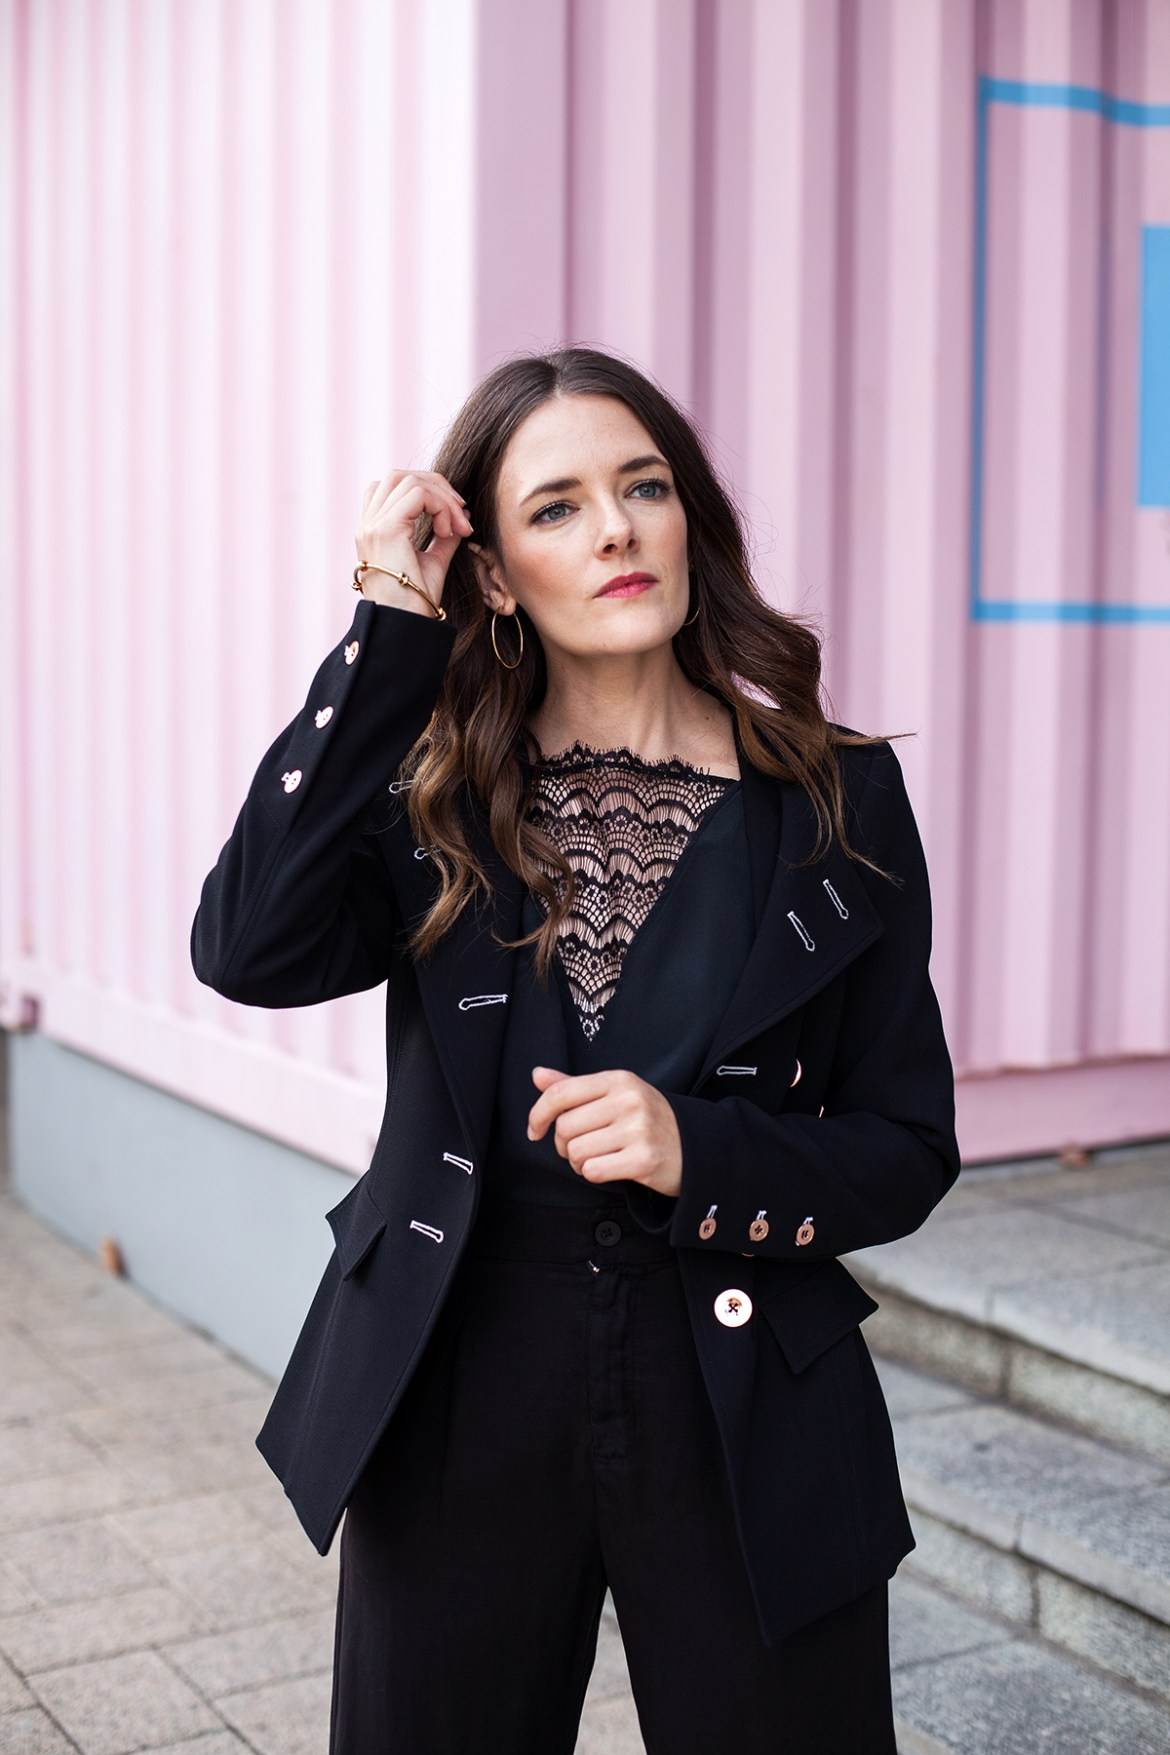 Inspiring Wit for City of Perth Winter fashion in Ginger and Smart blazer and lace cami from Periscope Boutique. Perth fashion blogger Jenelle Witty